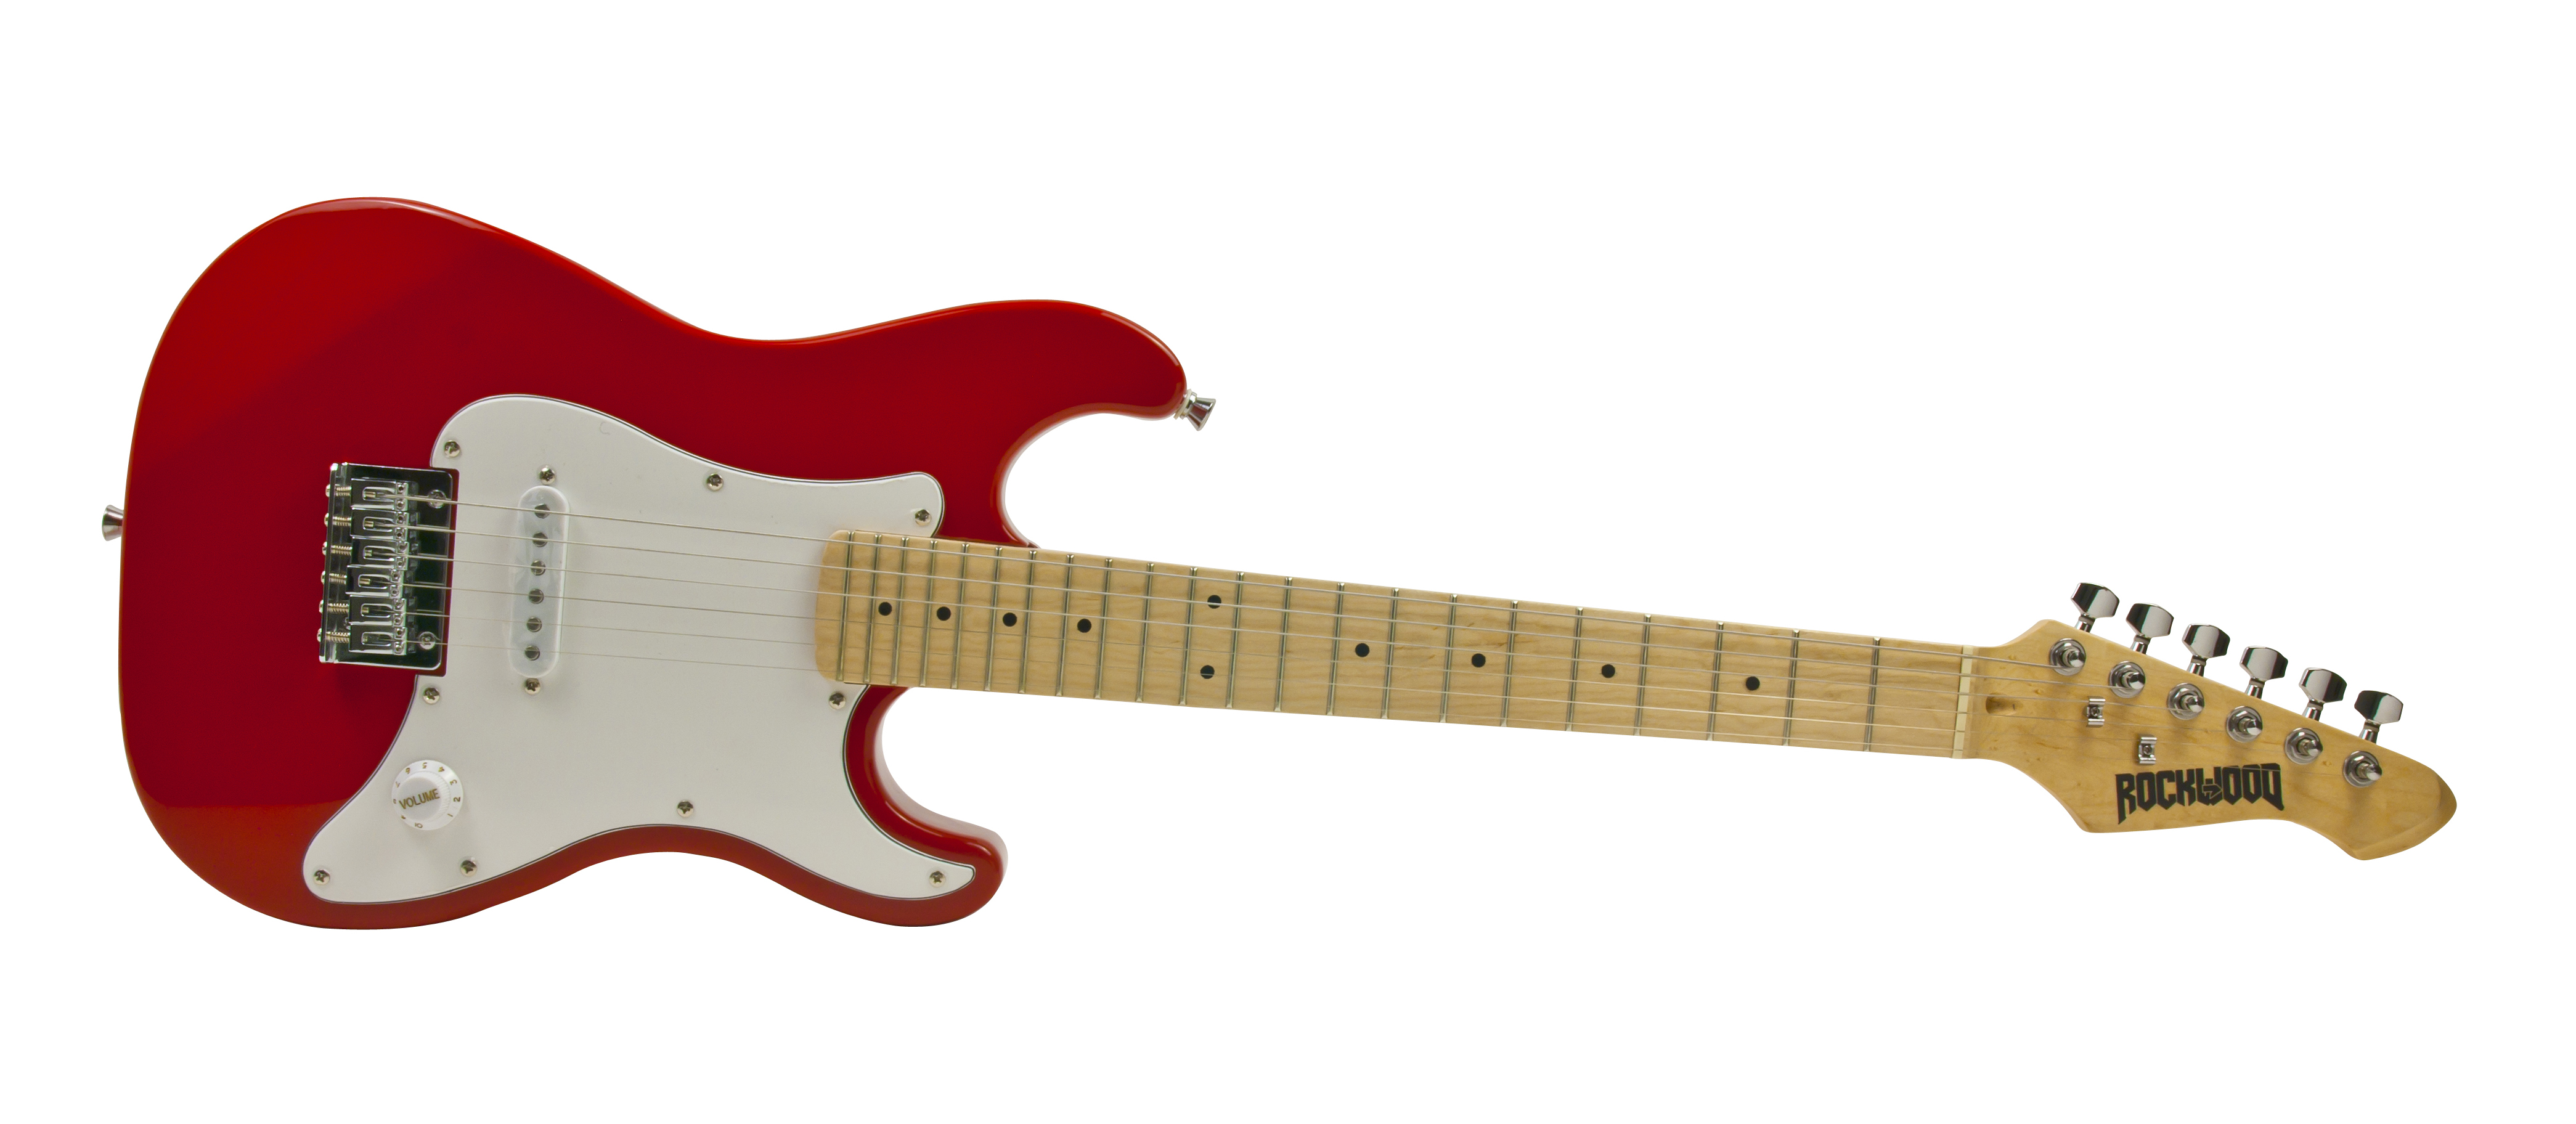 ROCKWOOD ELECTRIC GUITAR PACK RED -